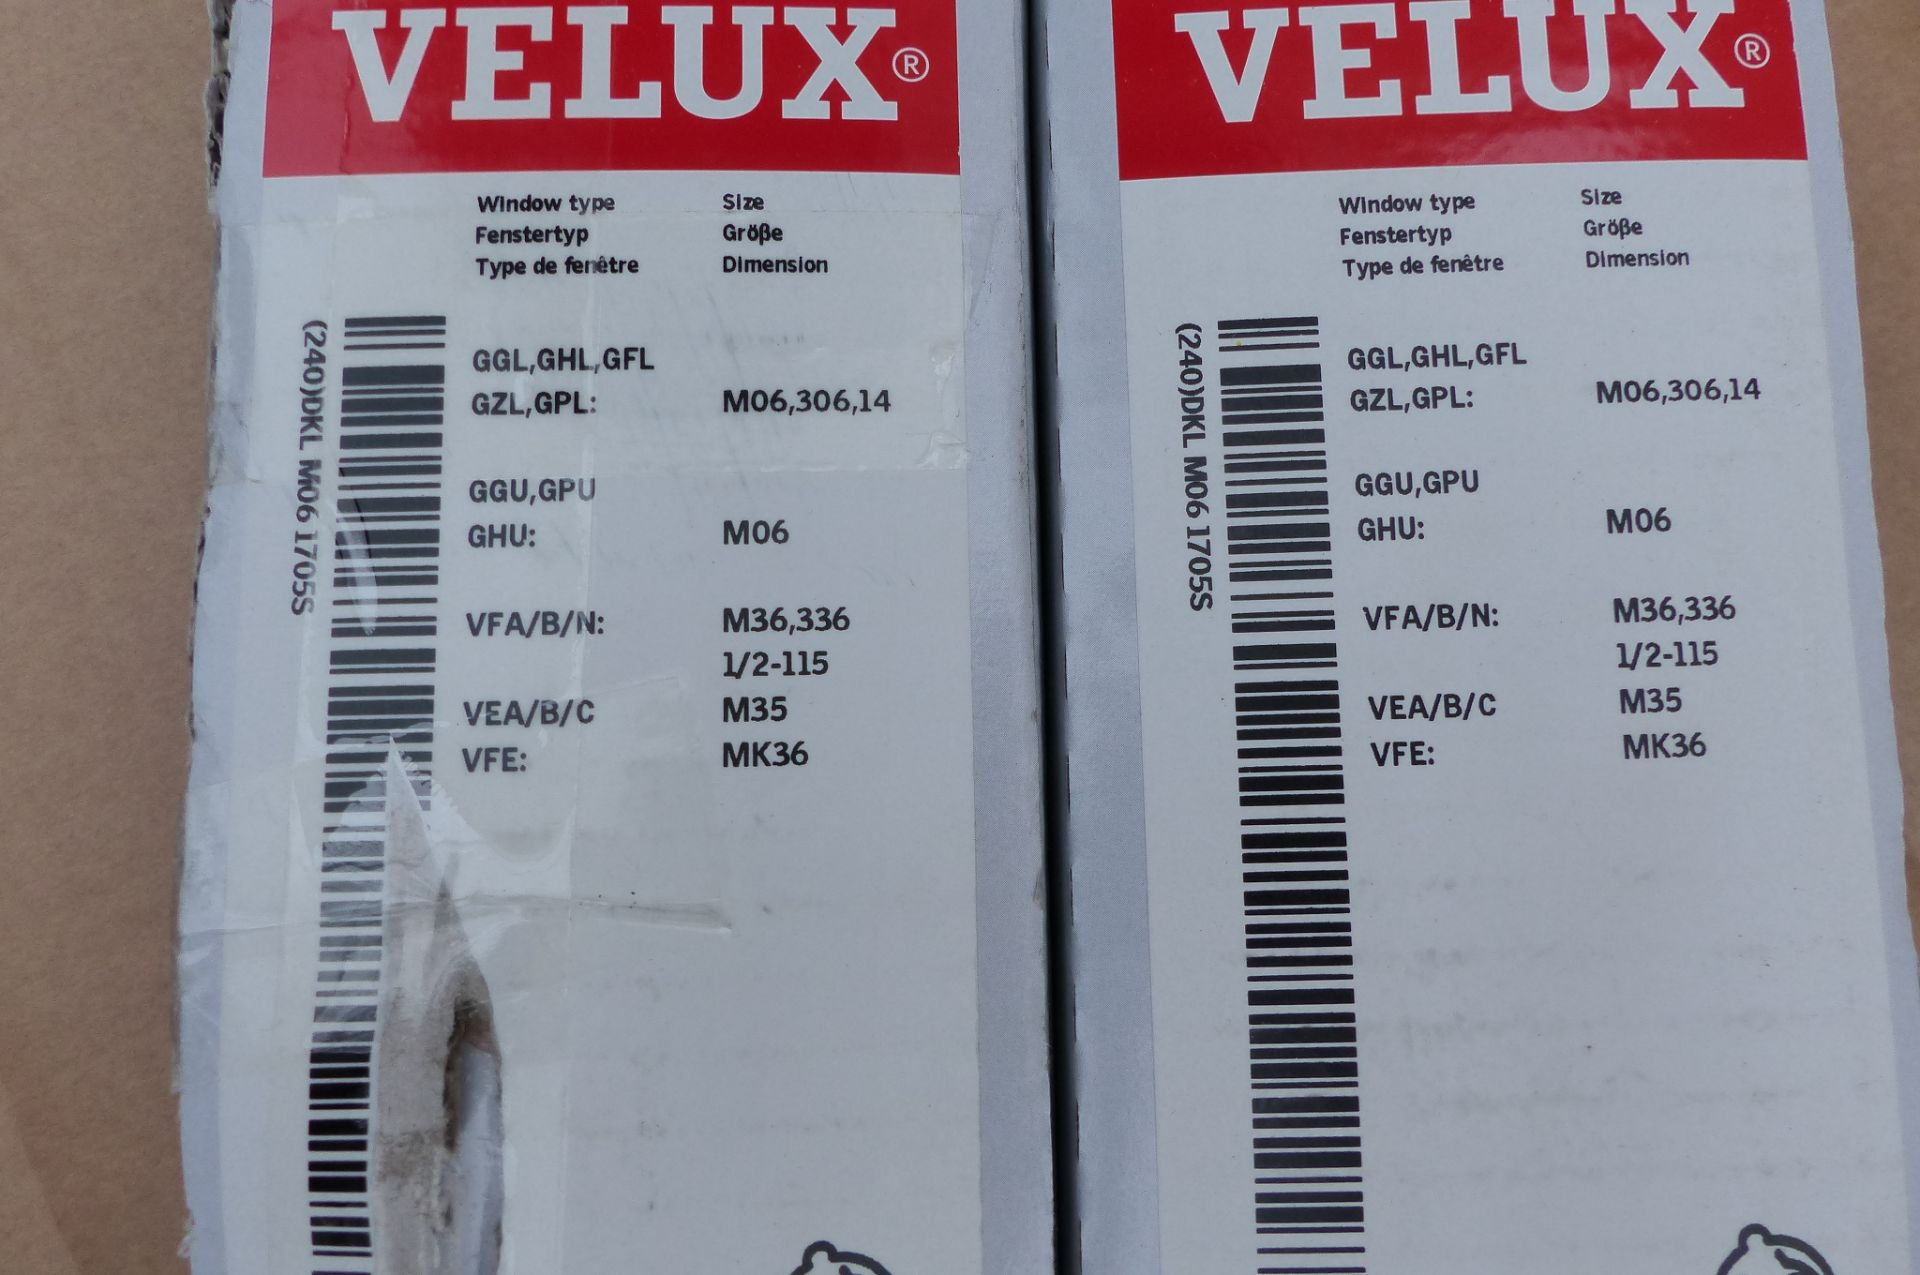 2 Velux Blinds - Image 2 of 2